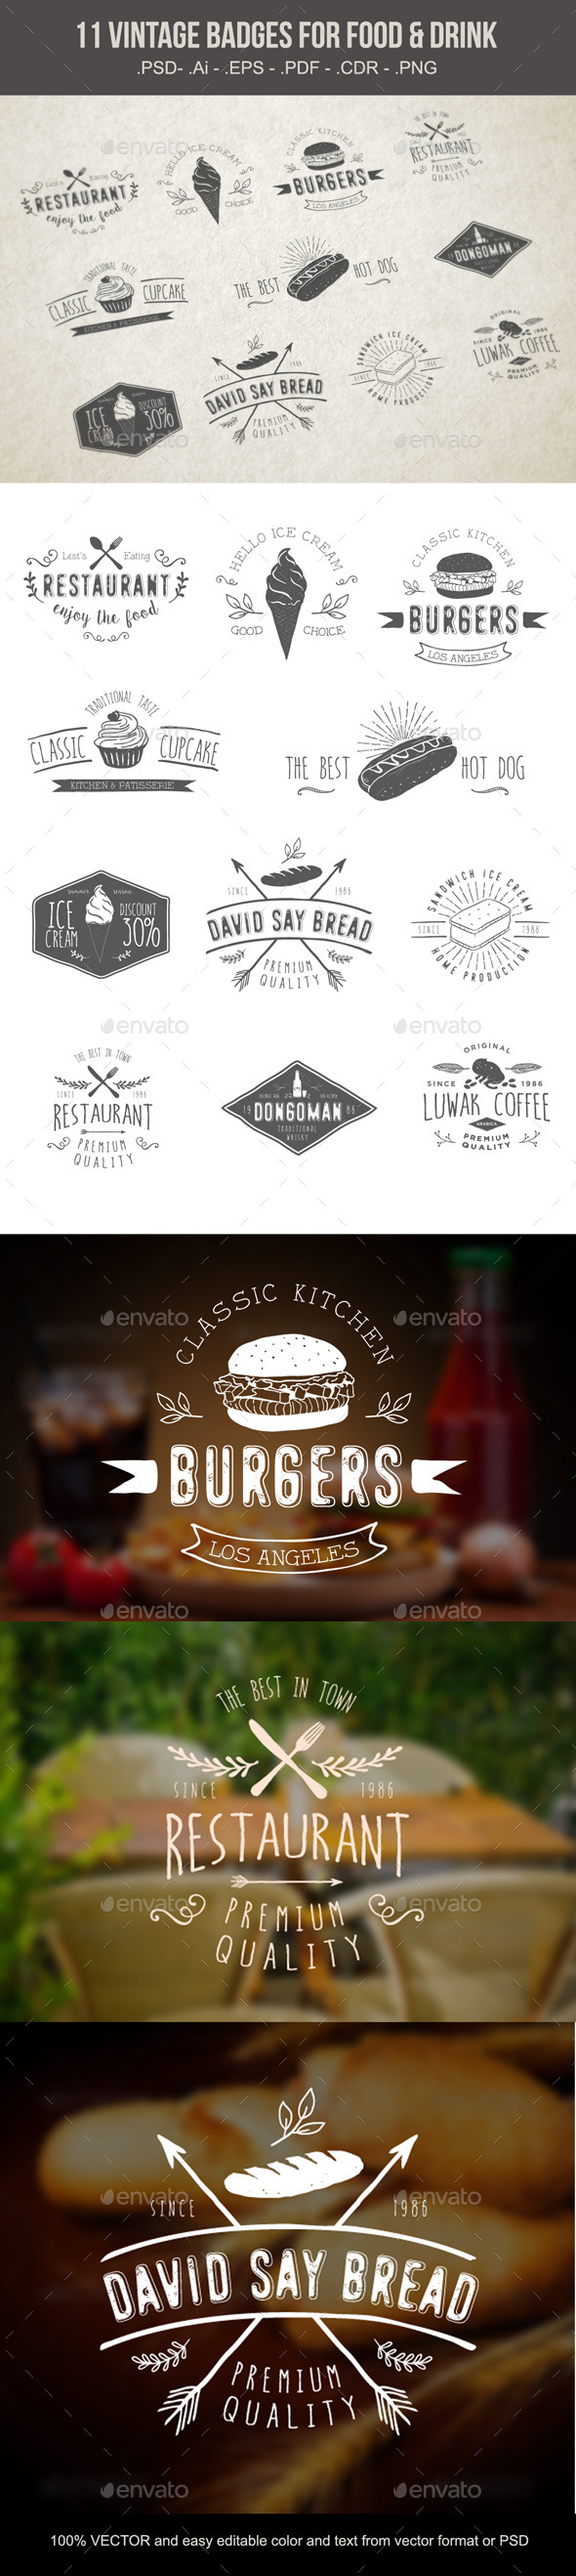 GraphicRiver Vintages Badges Food and Drink 10400431